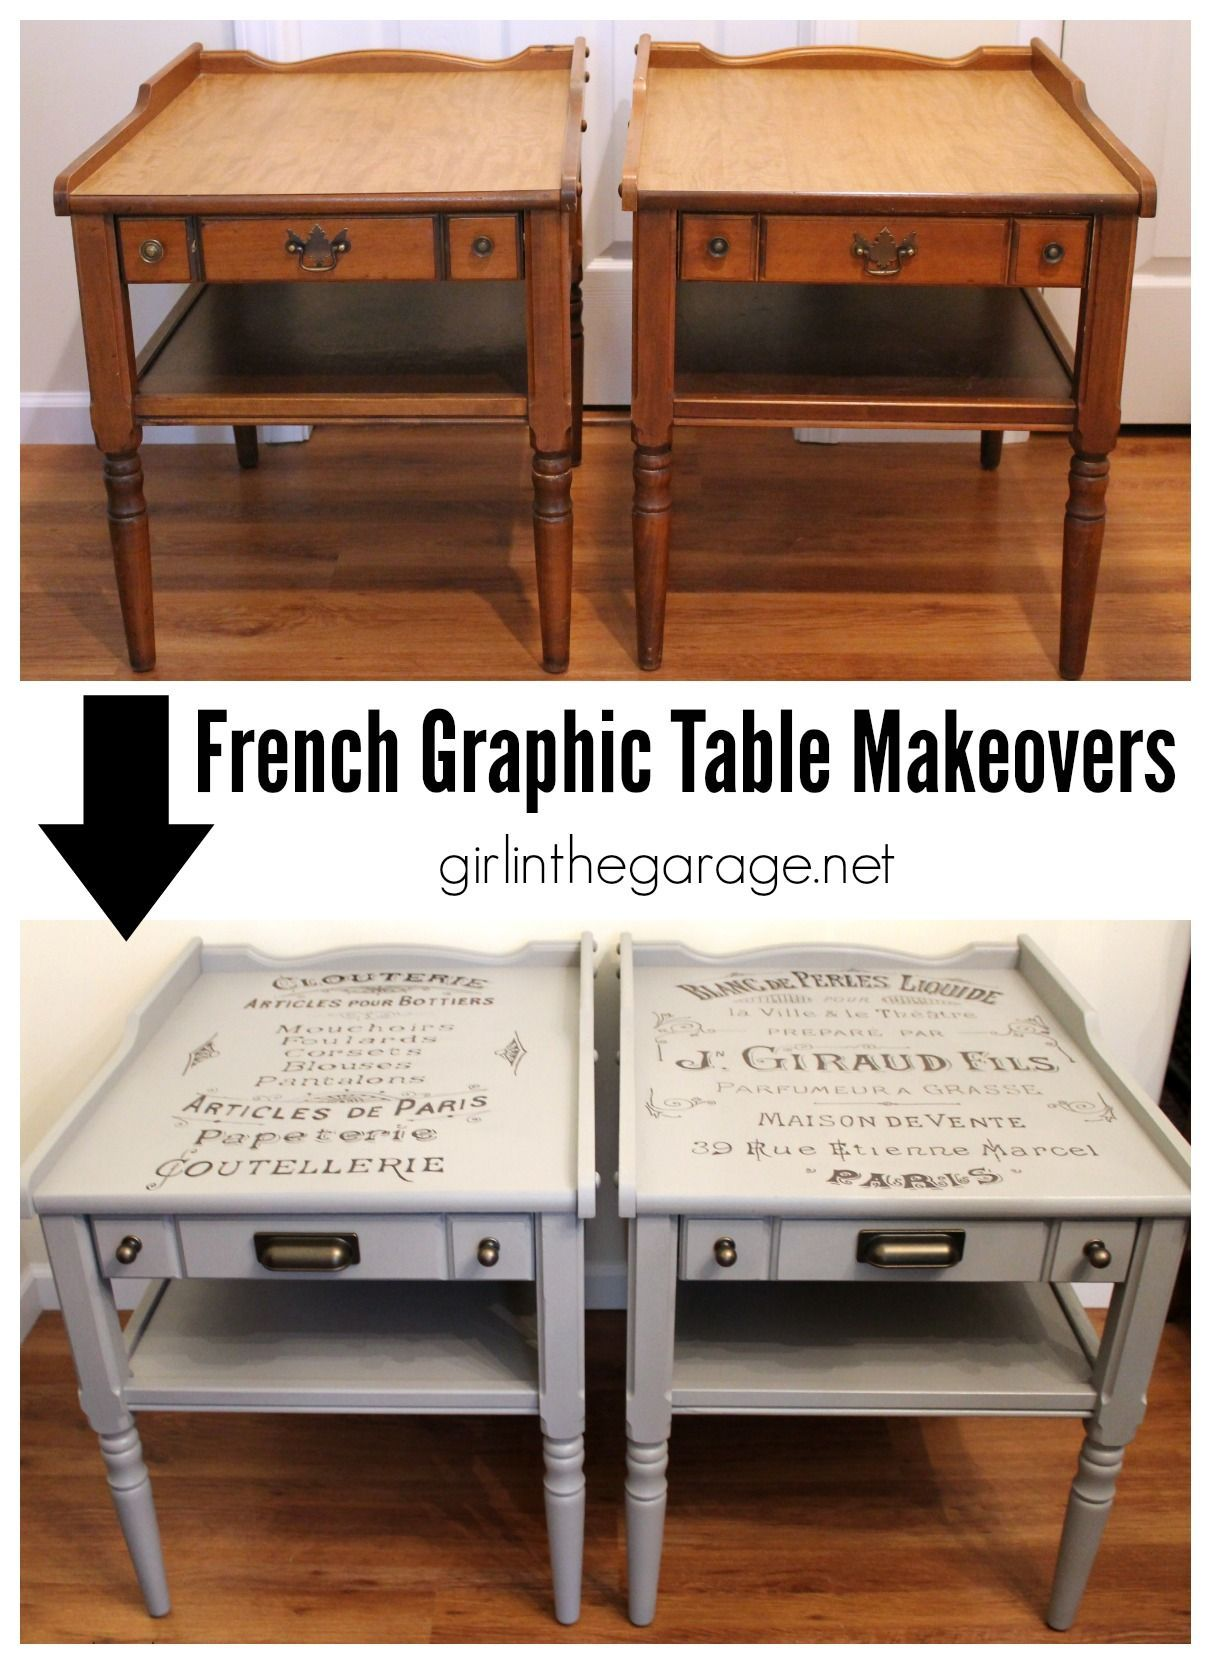 DIY French Graphic Table Makeovers girlinthegaragenet